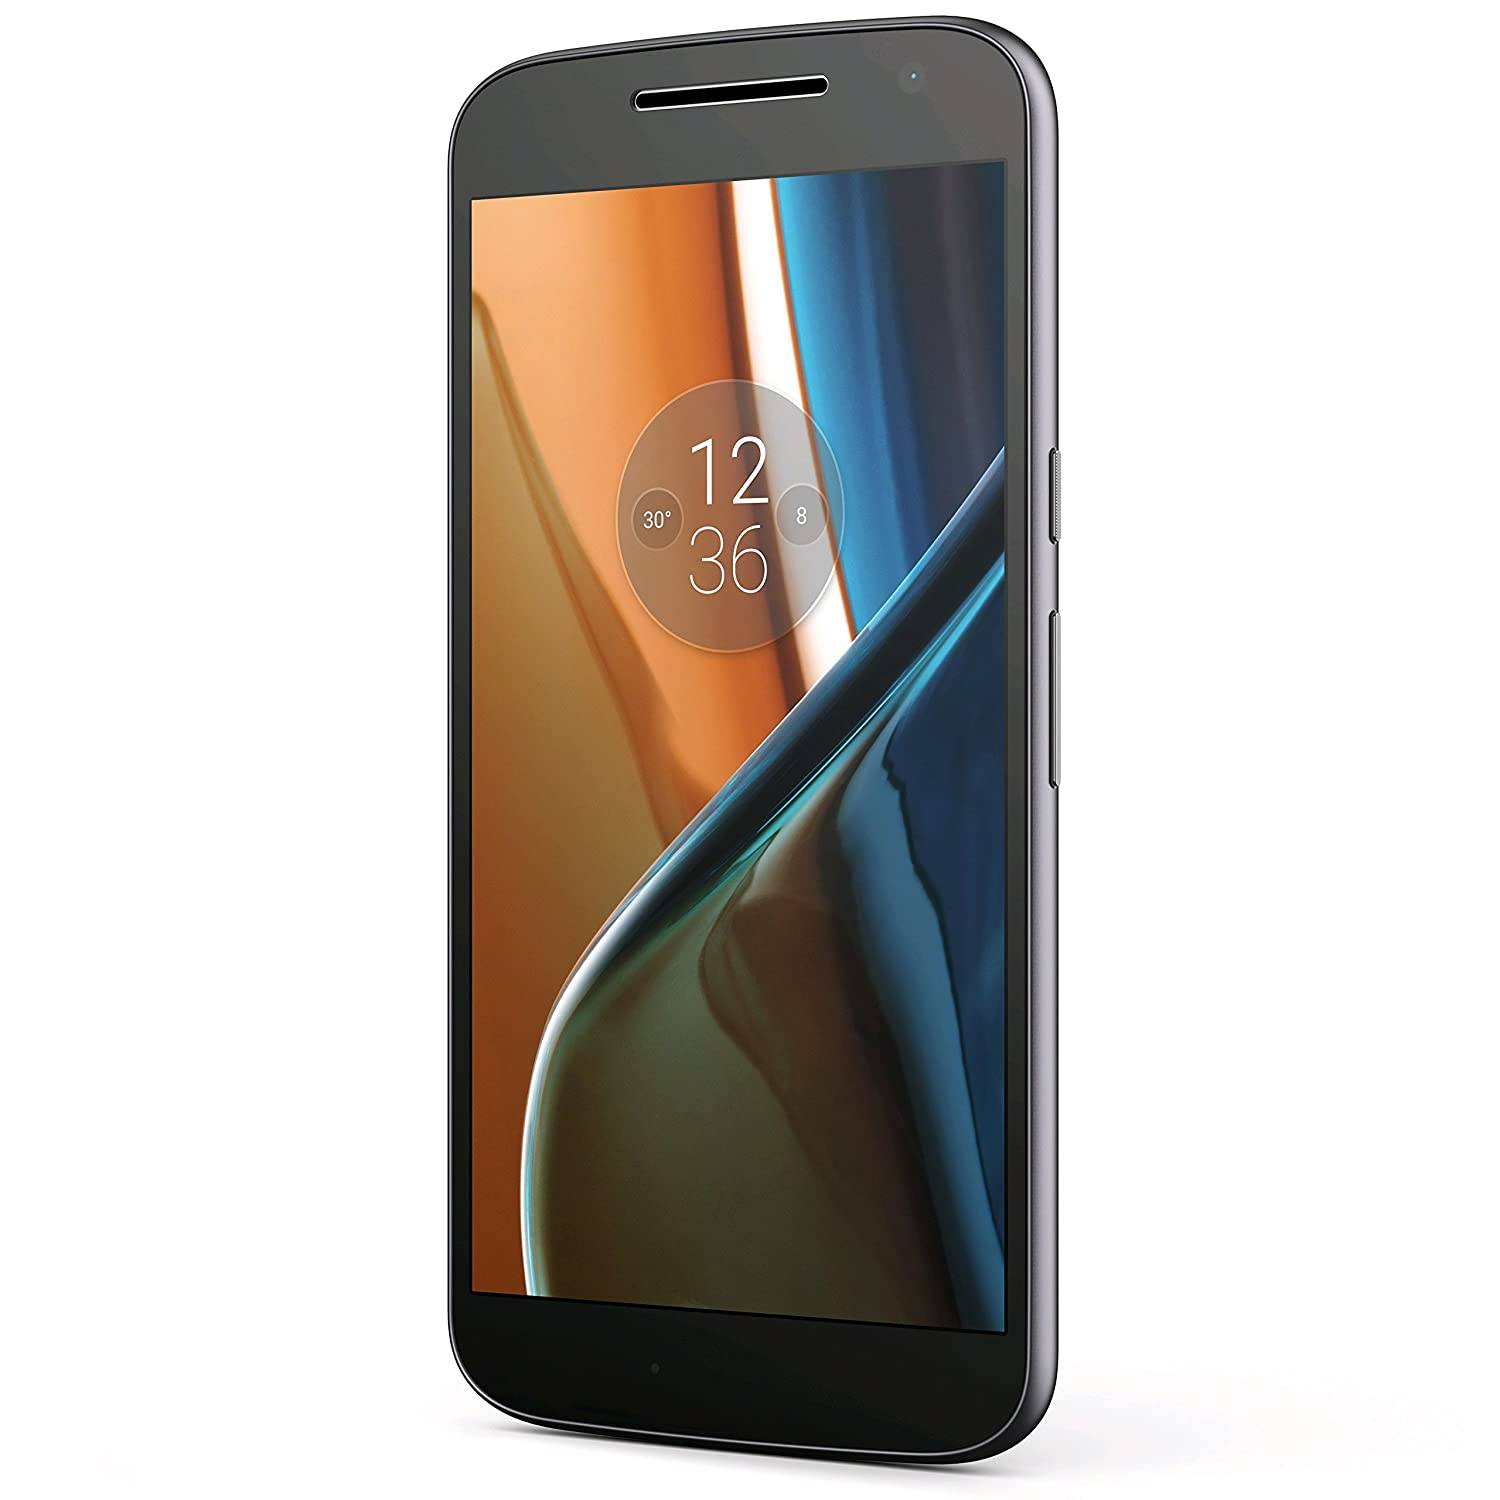 "Motorola Moto G4 (16GB) XT1621 GSM Factory Unlocked 4G LTE Phone - 5.5"" Screen (International Version - No Warranty) - Black"